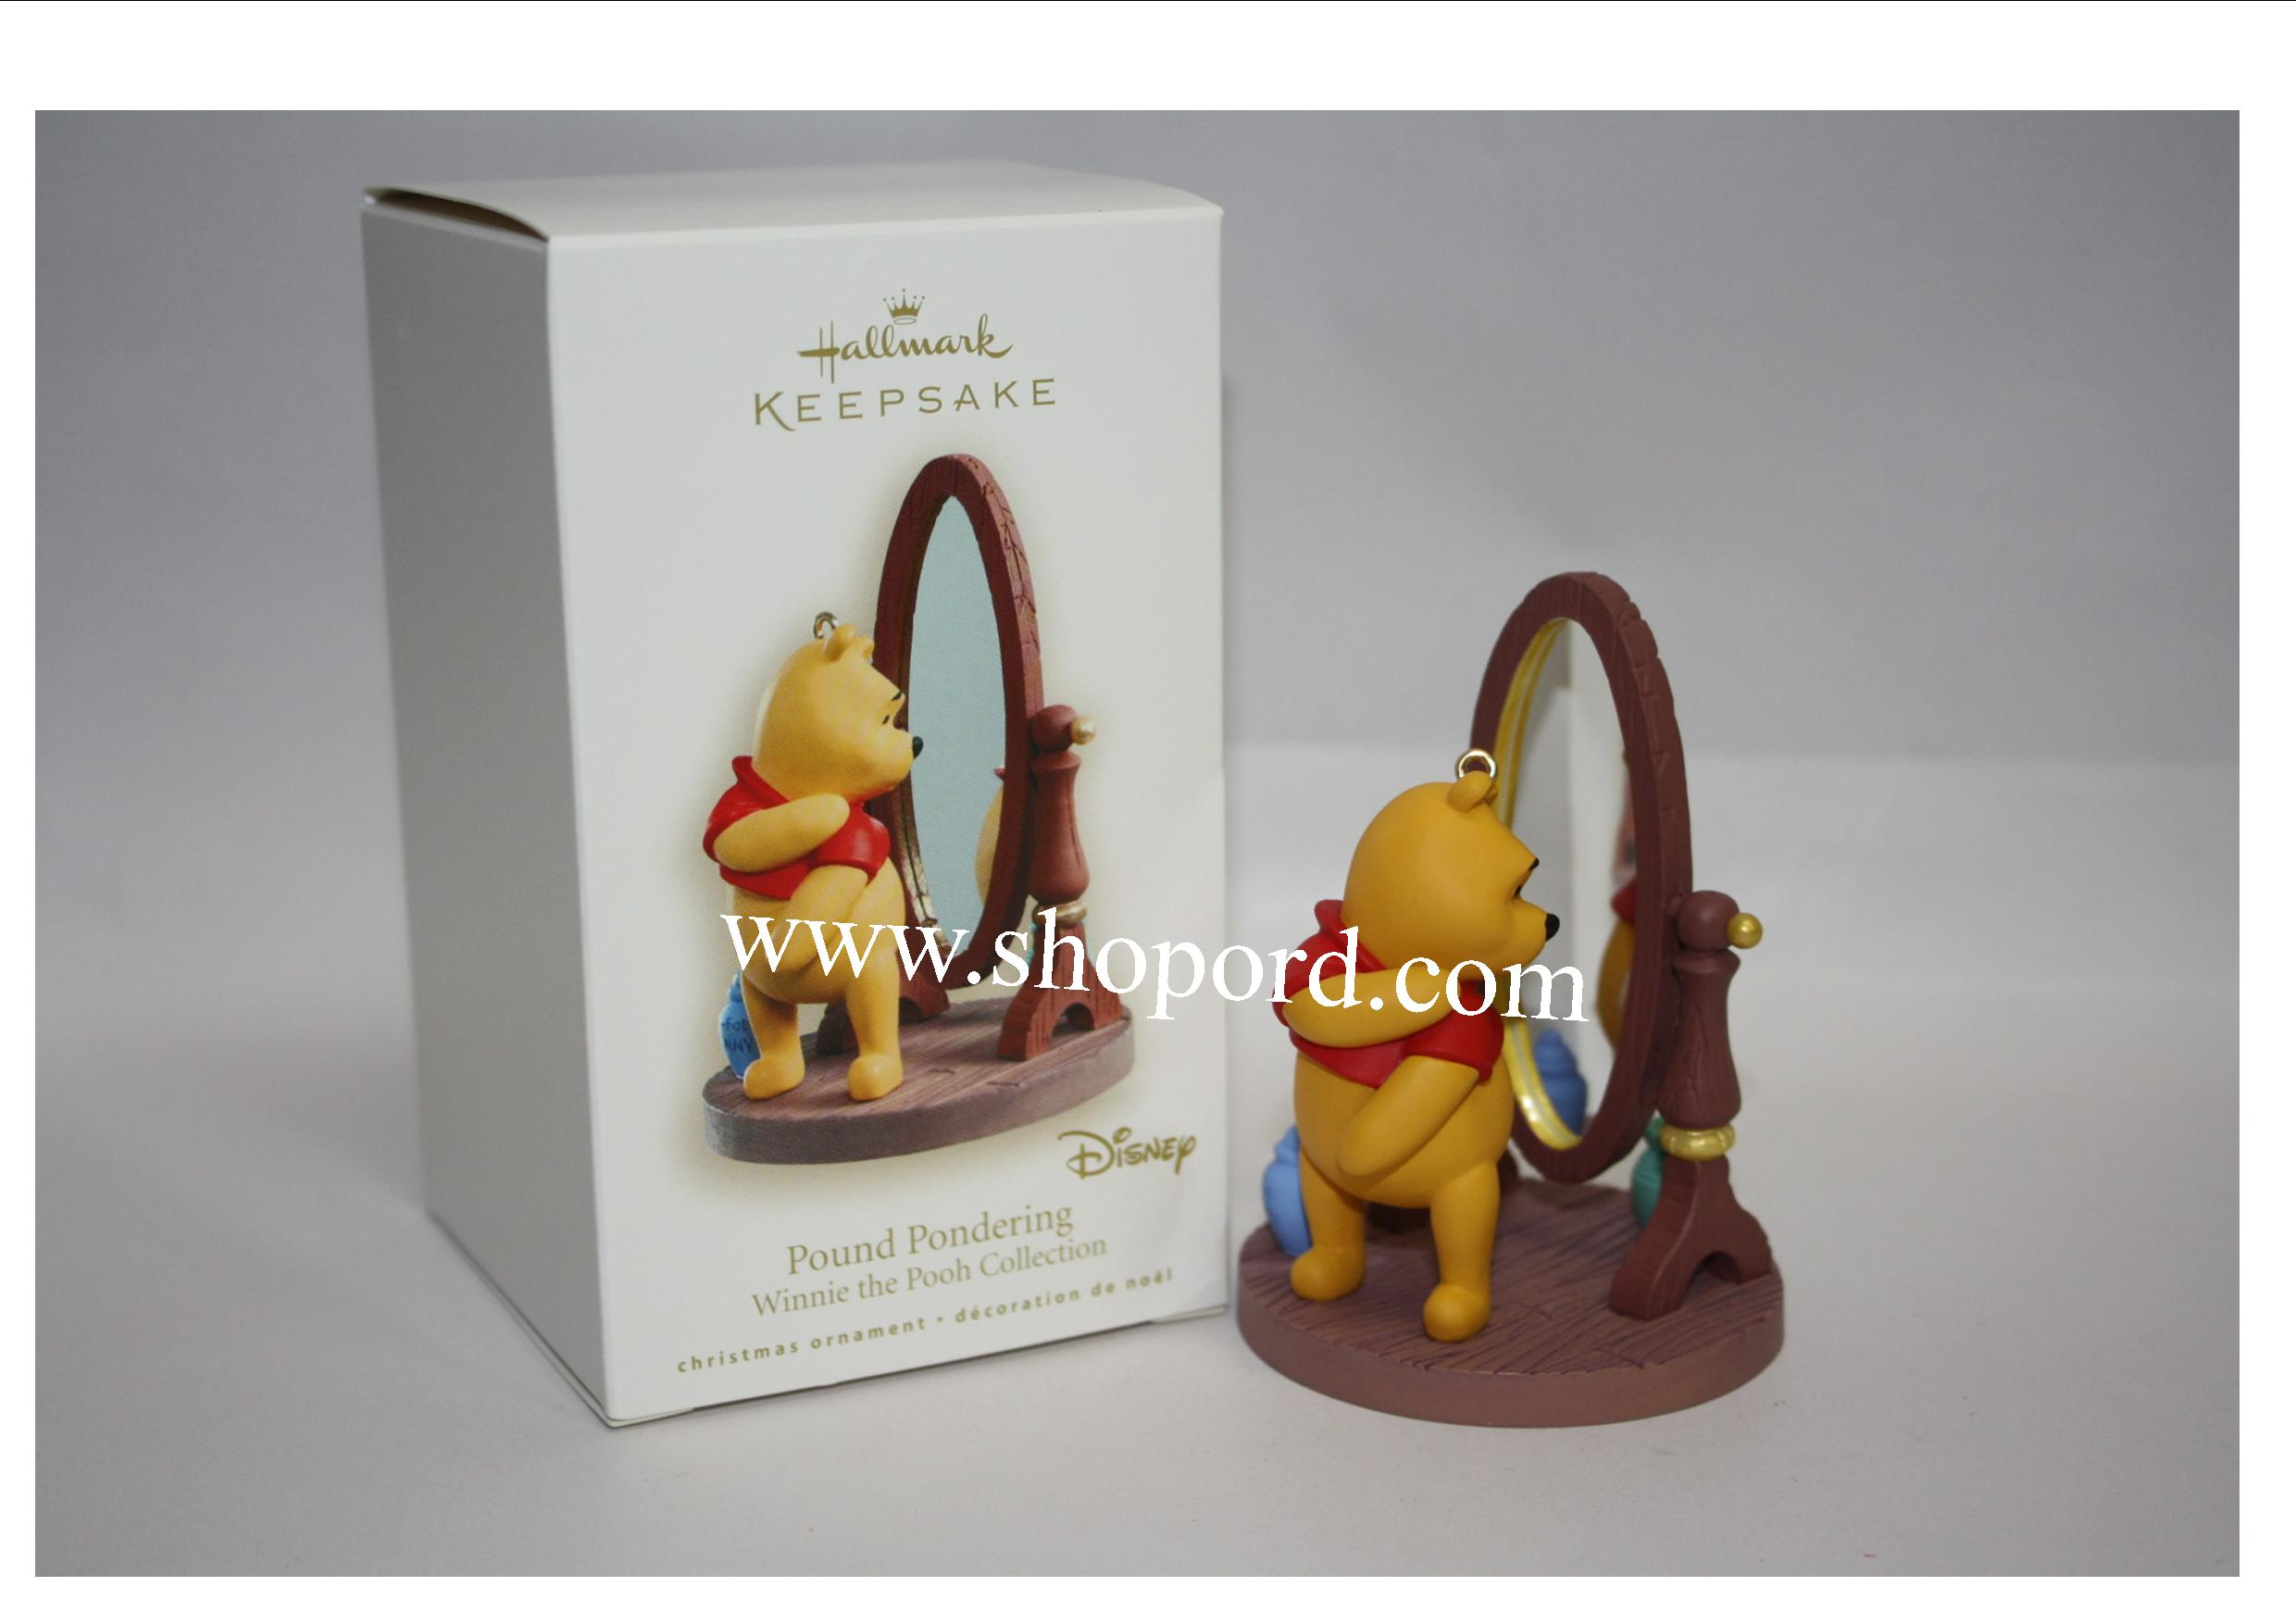 Hallmark 2008 Pound Pondering Ornament Winnie the Pooh Collection Disney QXD4094 Damaged Box